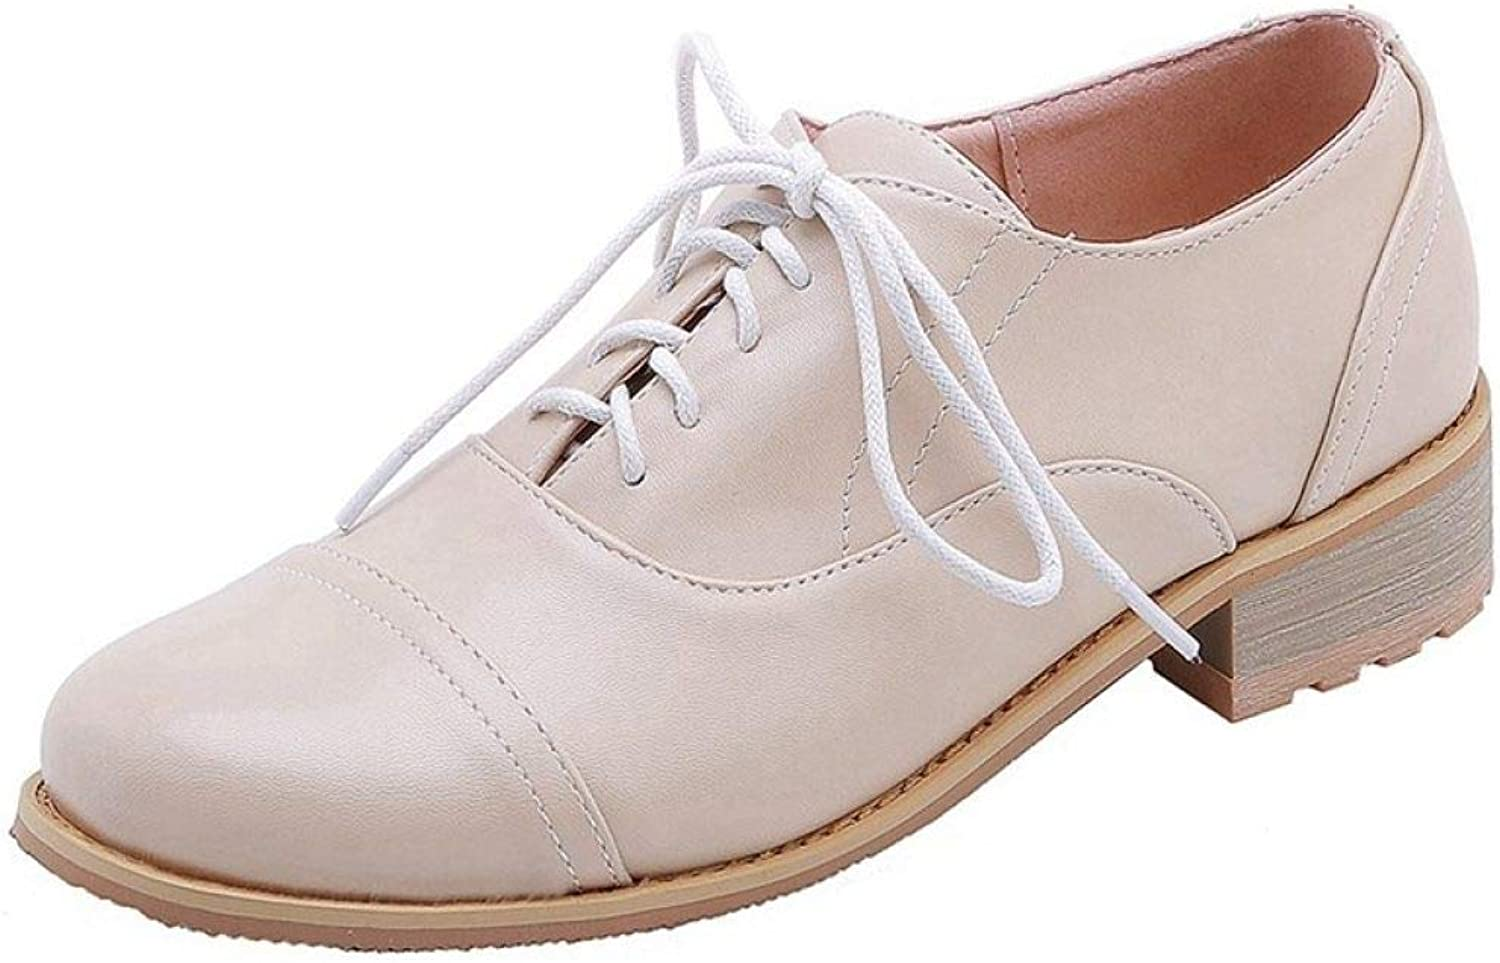 Fay Waters Women's Leather Classic Saddle Oxfords Low Heel Round Toe Lace Up Plain shoes